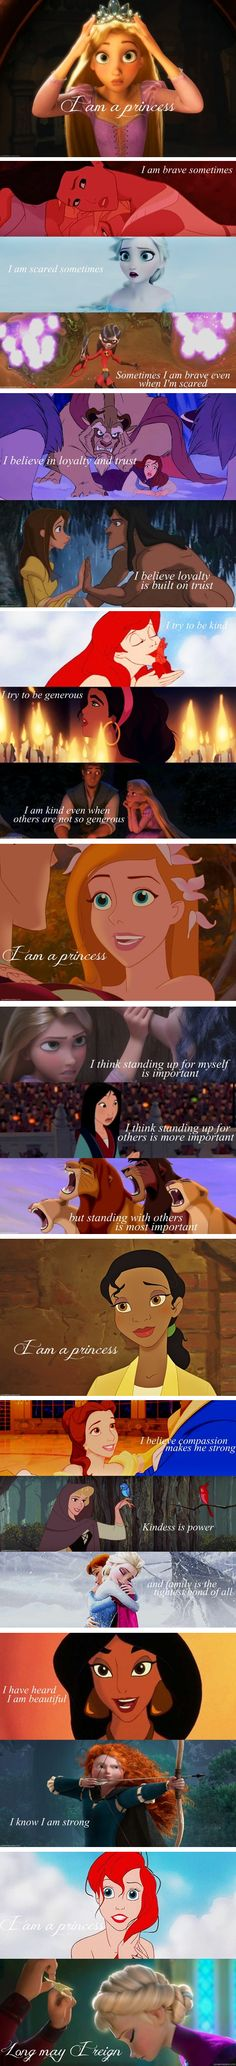 I am a princess... I absolutely love this